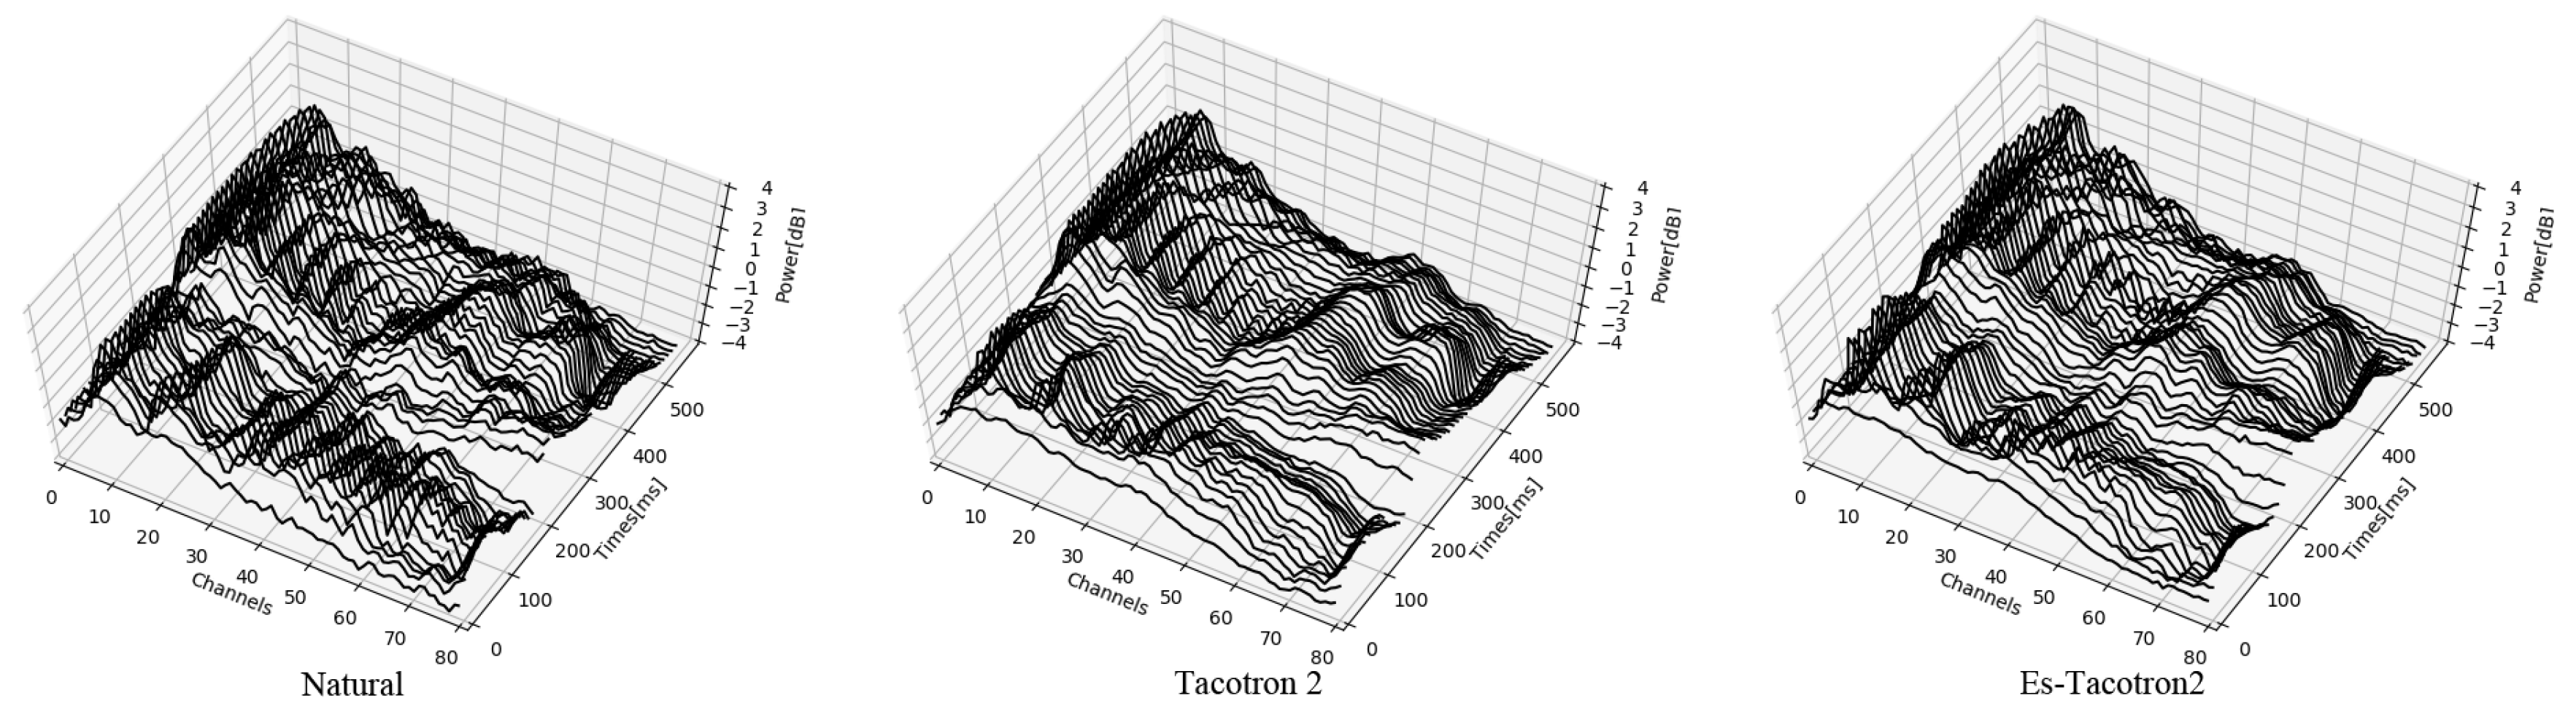 Information | Free Full-Text | Es-Tacotron2: Multi-Task Tacotron 2